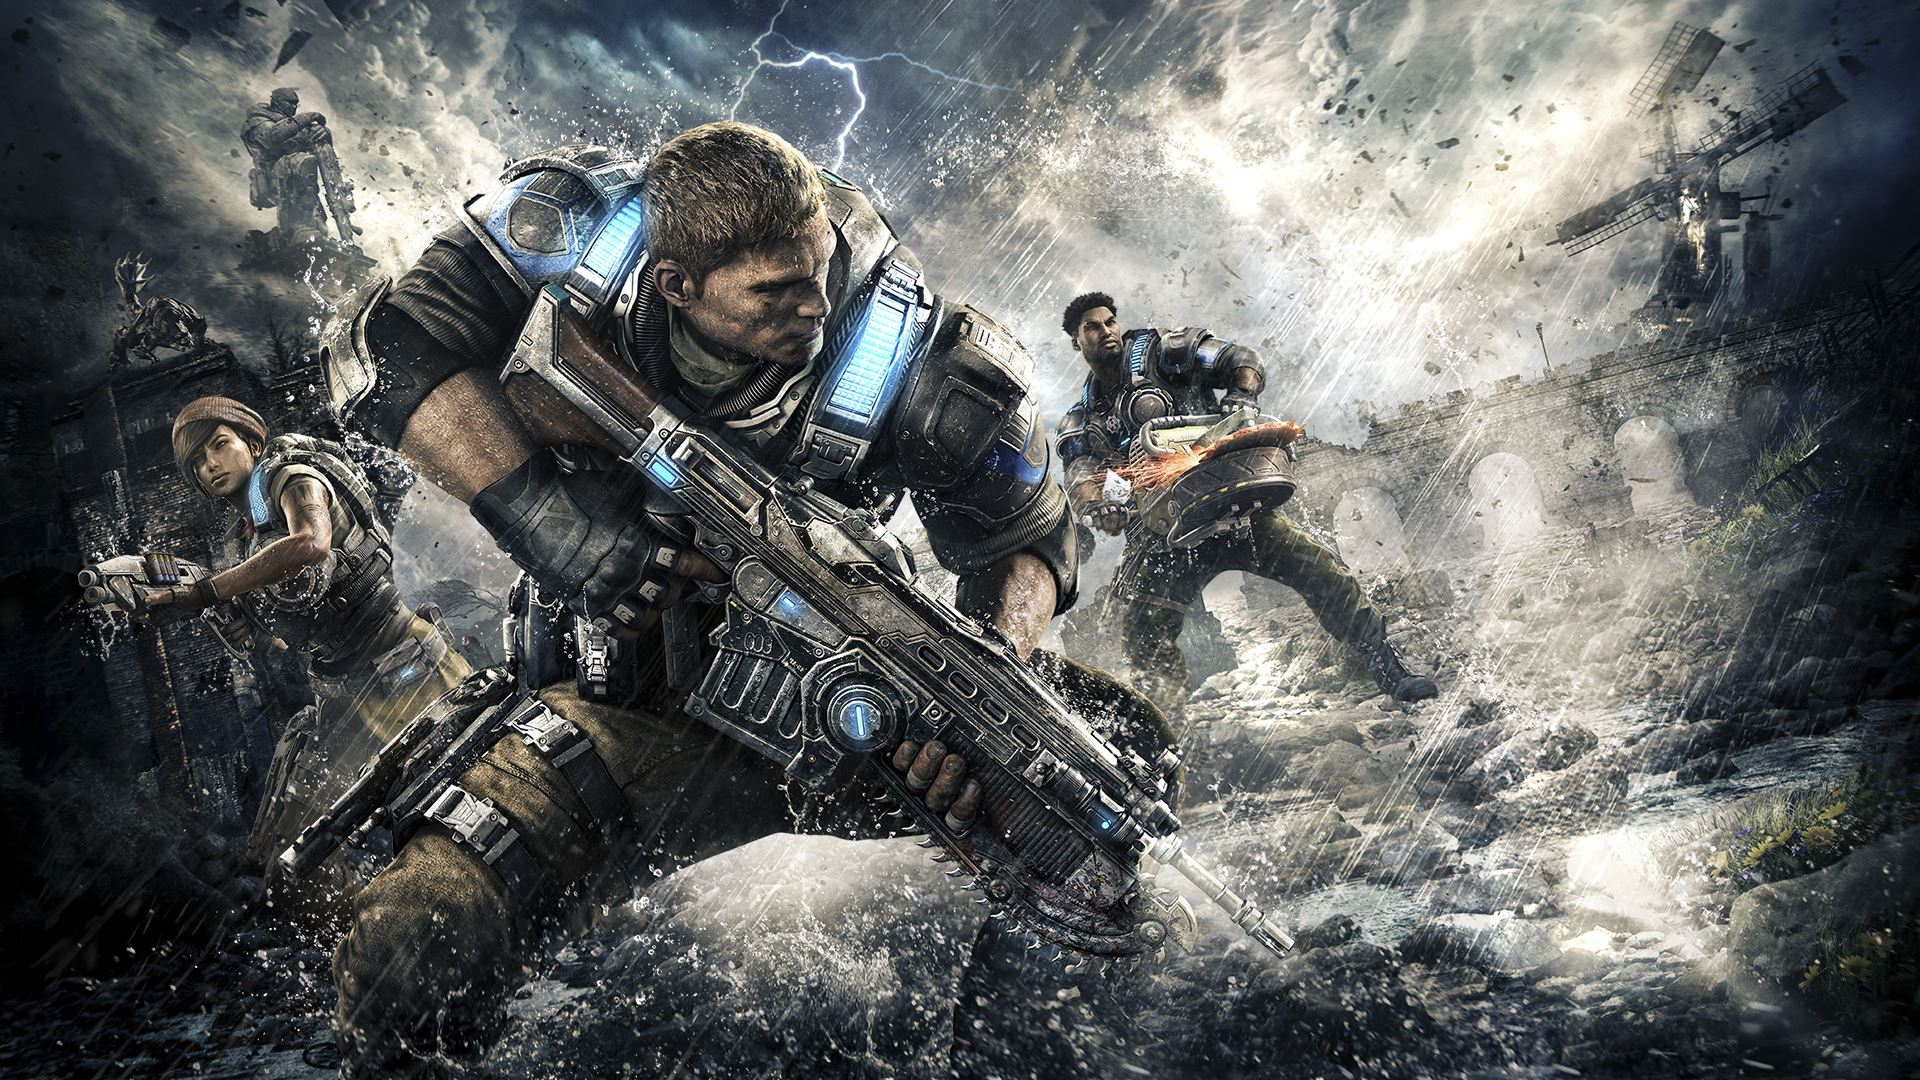 Xbox Announces 'Gears of War 4: Live' on October 5